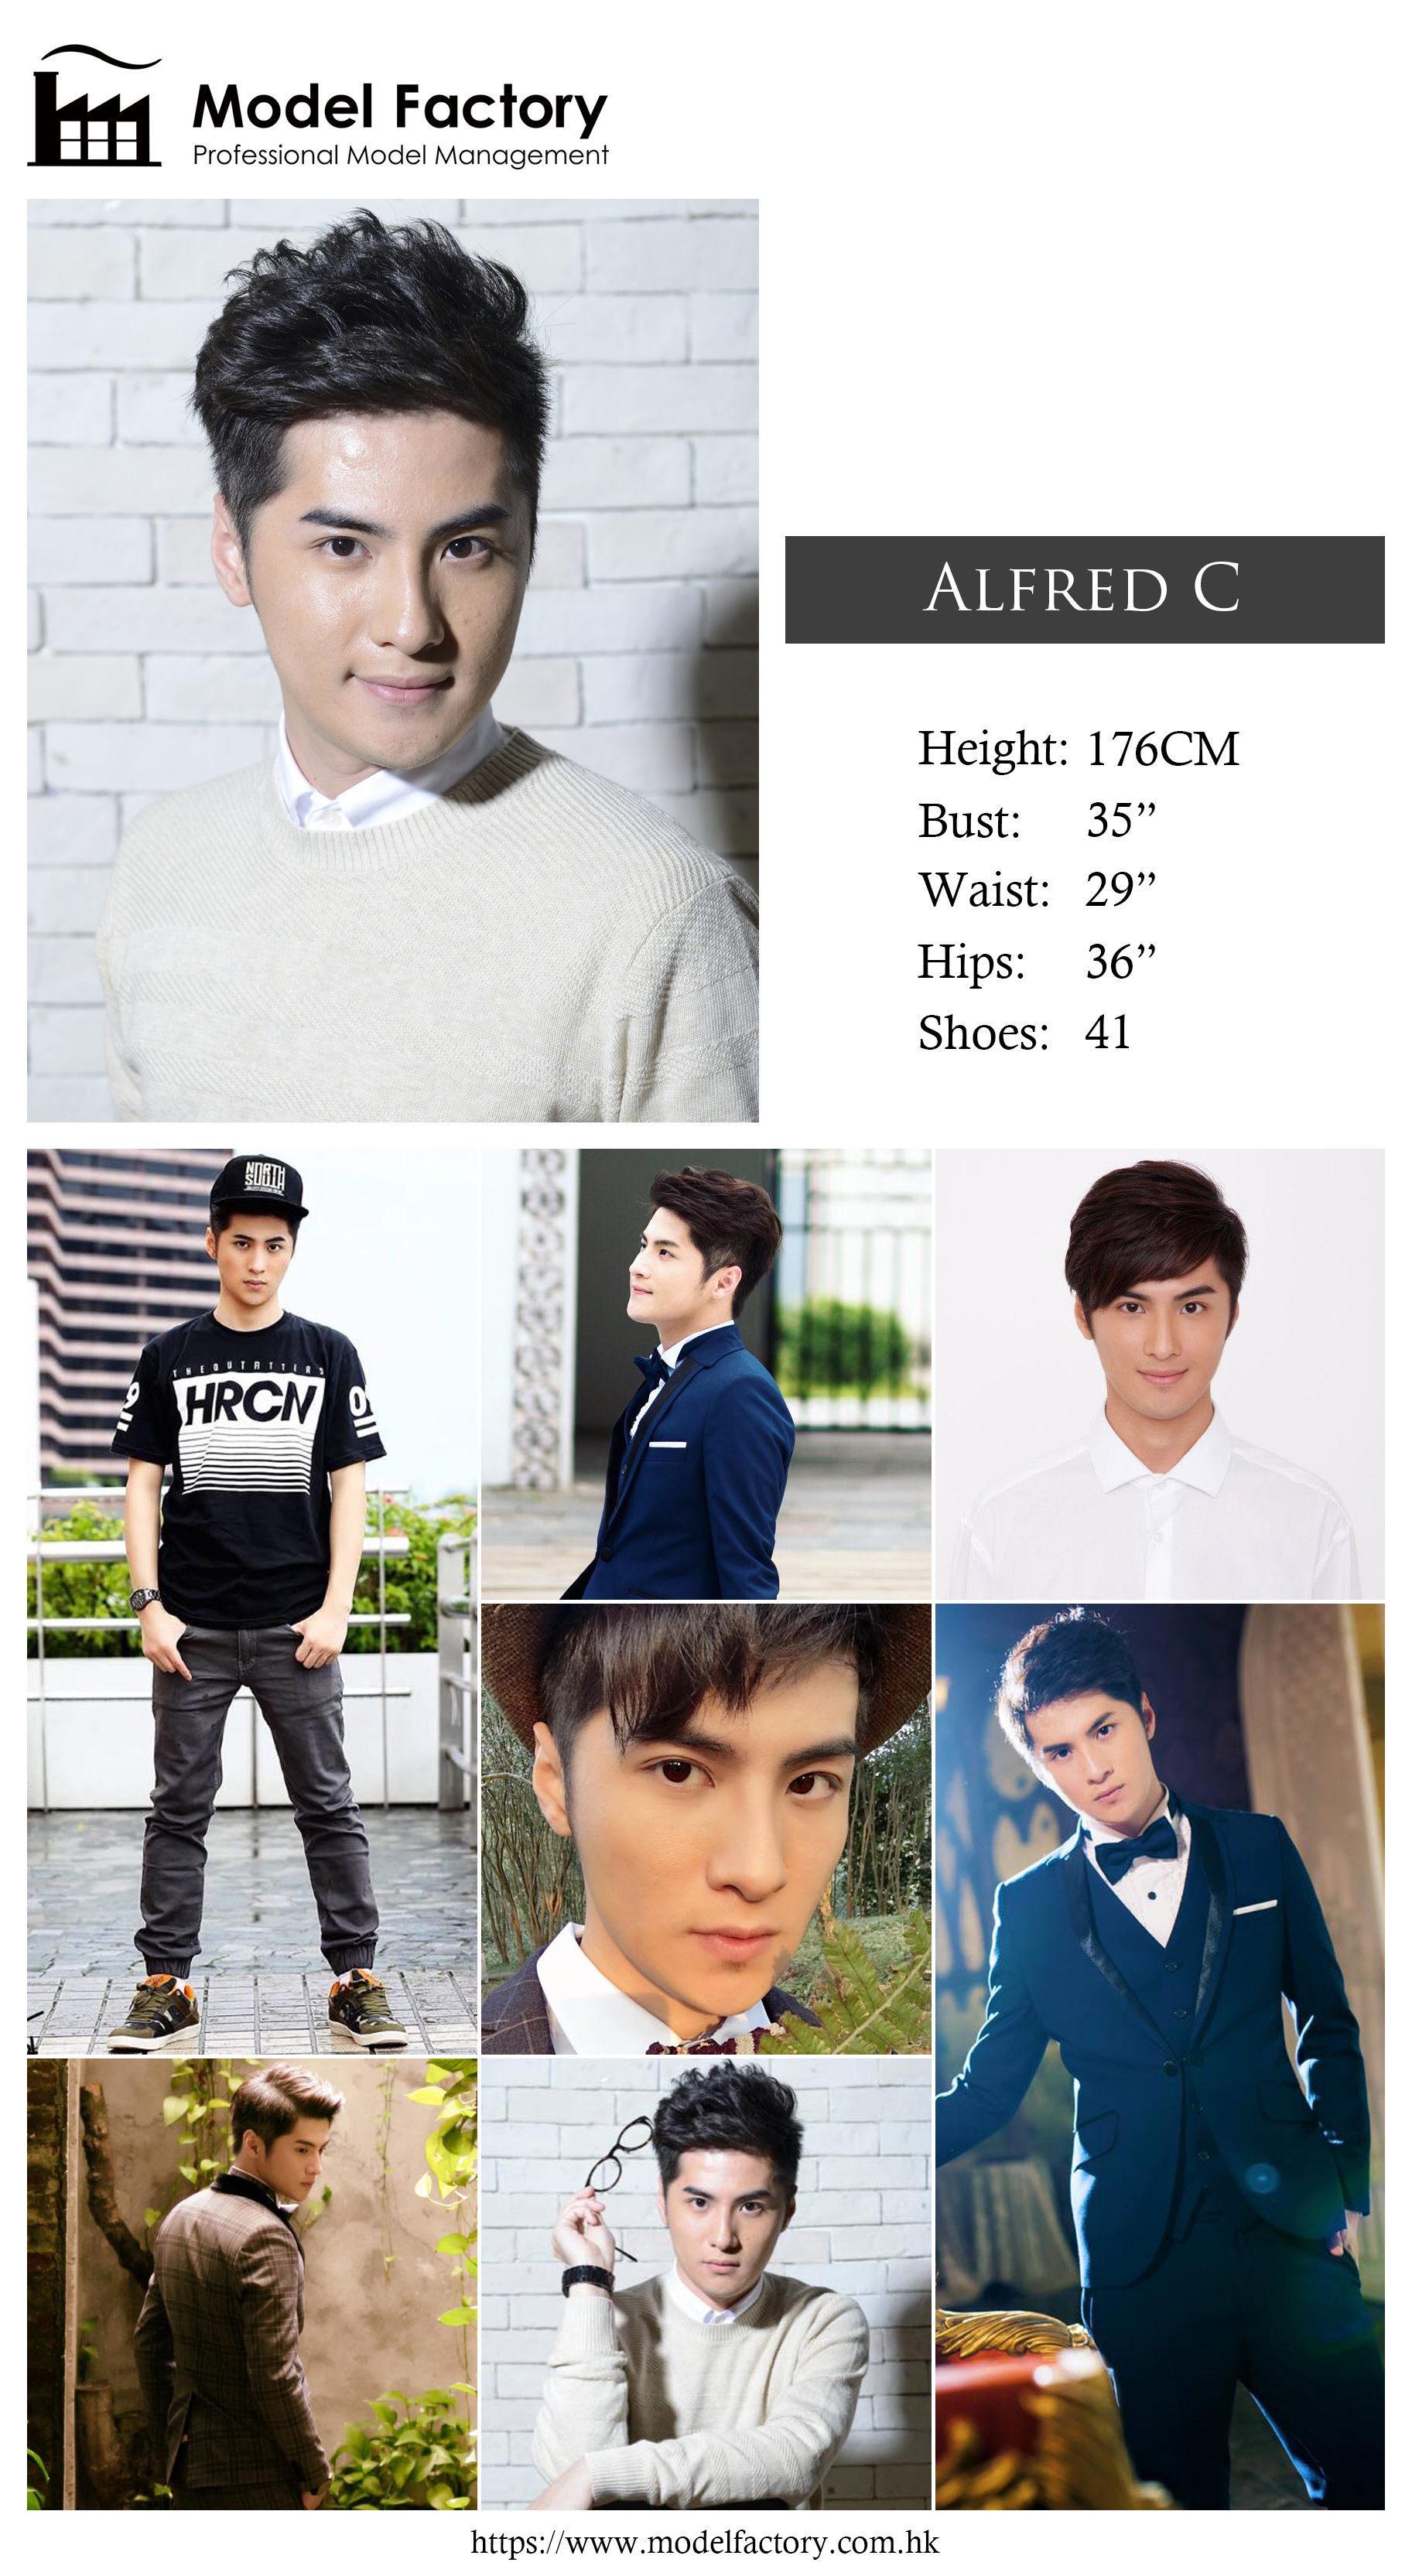 Model Factory Hong Kong Male Model AlfredC